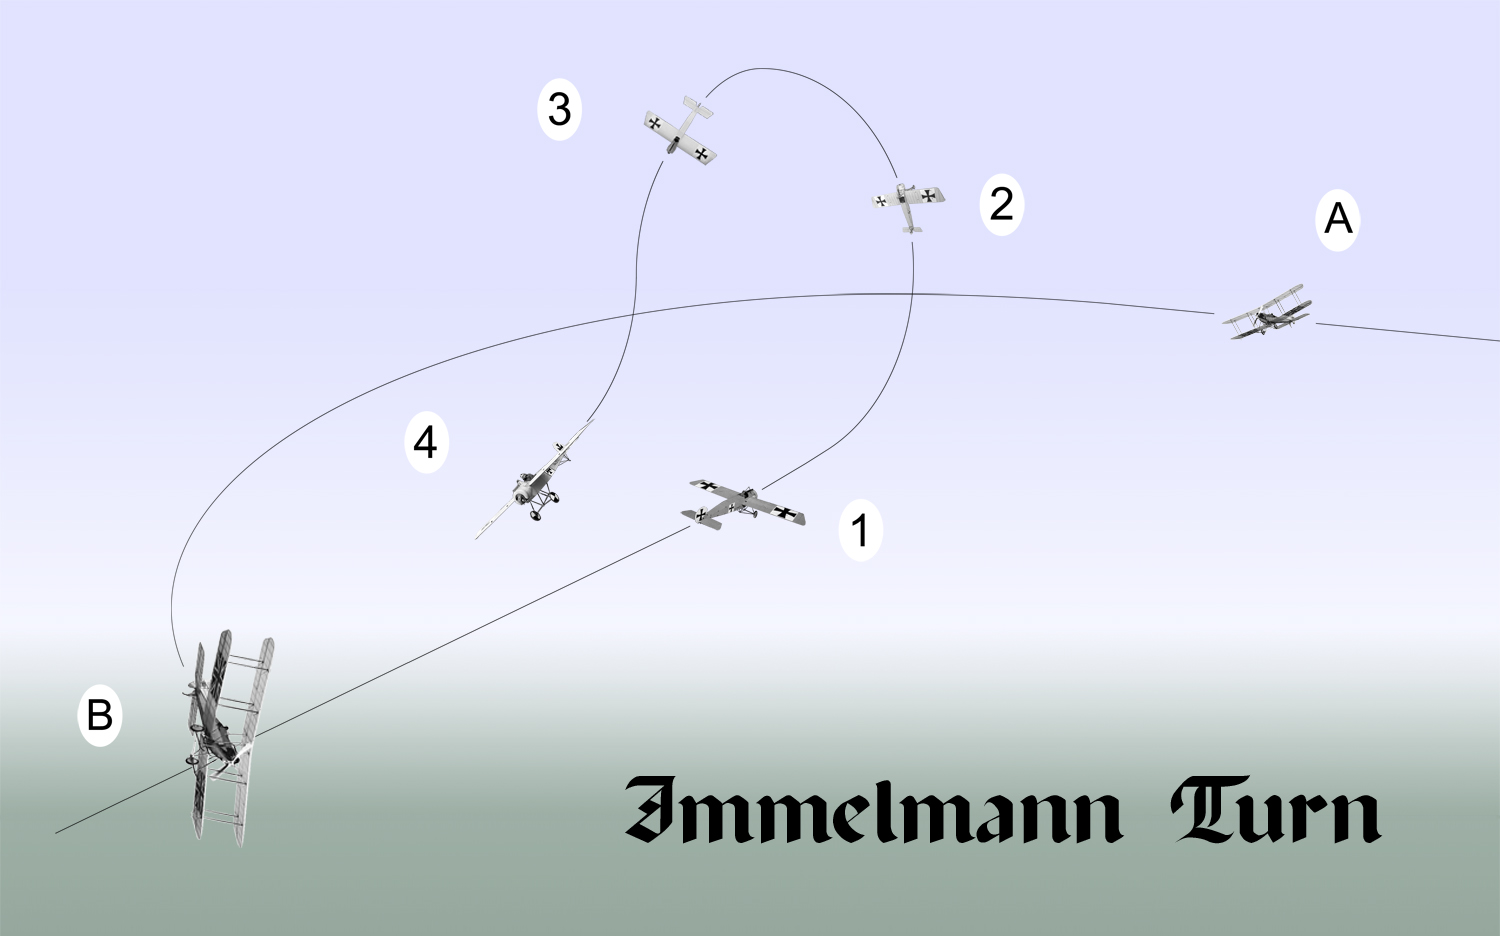 Diagram of the immelmann turn pitting an eindecker e iii against an